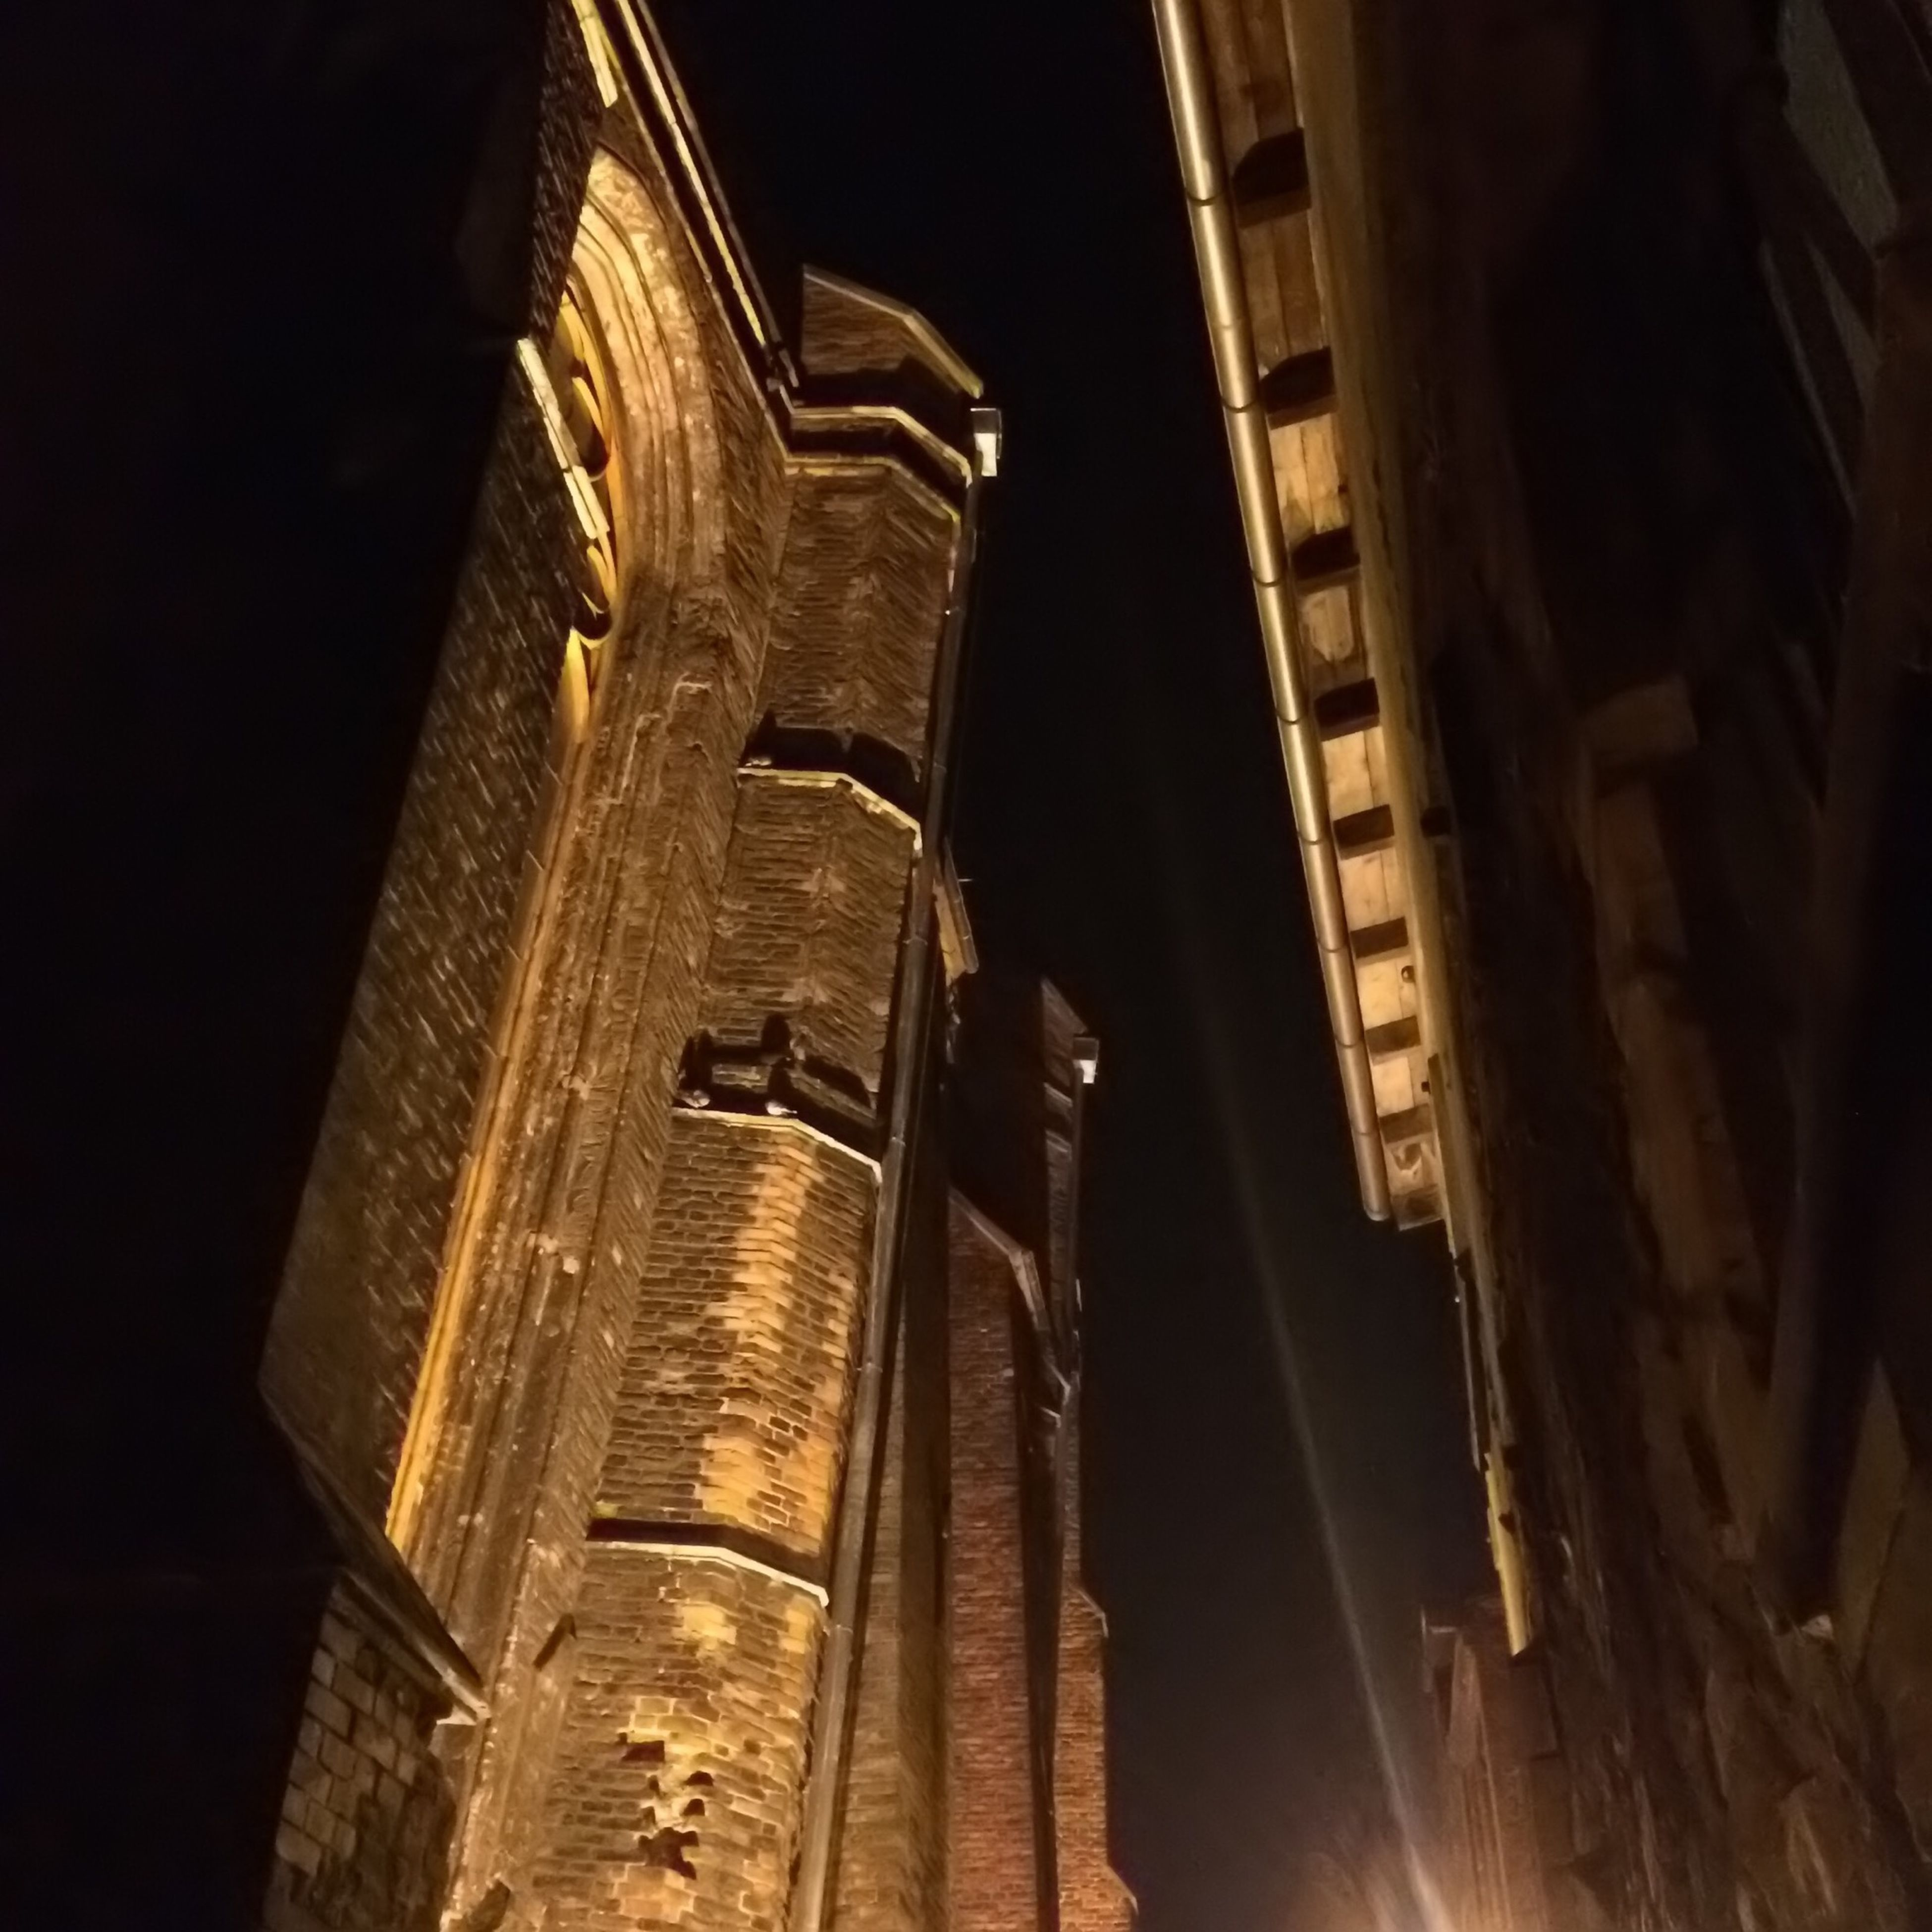 architecture, low angle view, built structure, building exterior, night, illuminated, building, no people, church, outdoors, sky, place of worship, city, window, lighting equipment, clear sky, history, religion, tilt